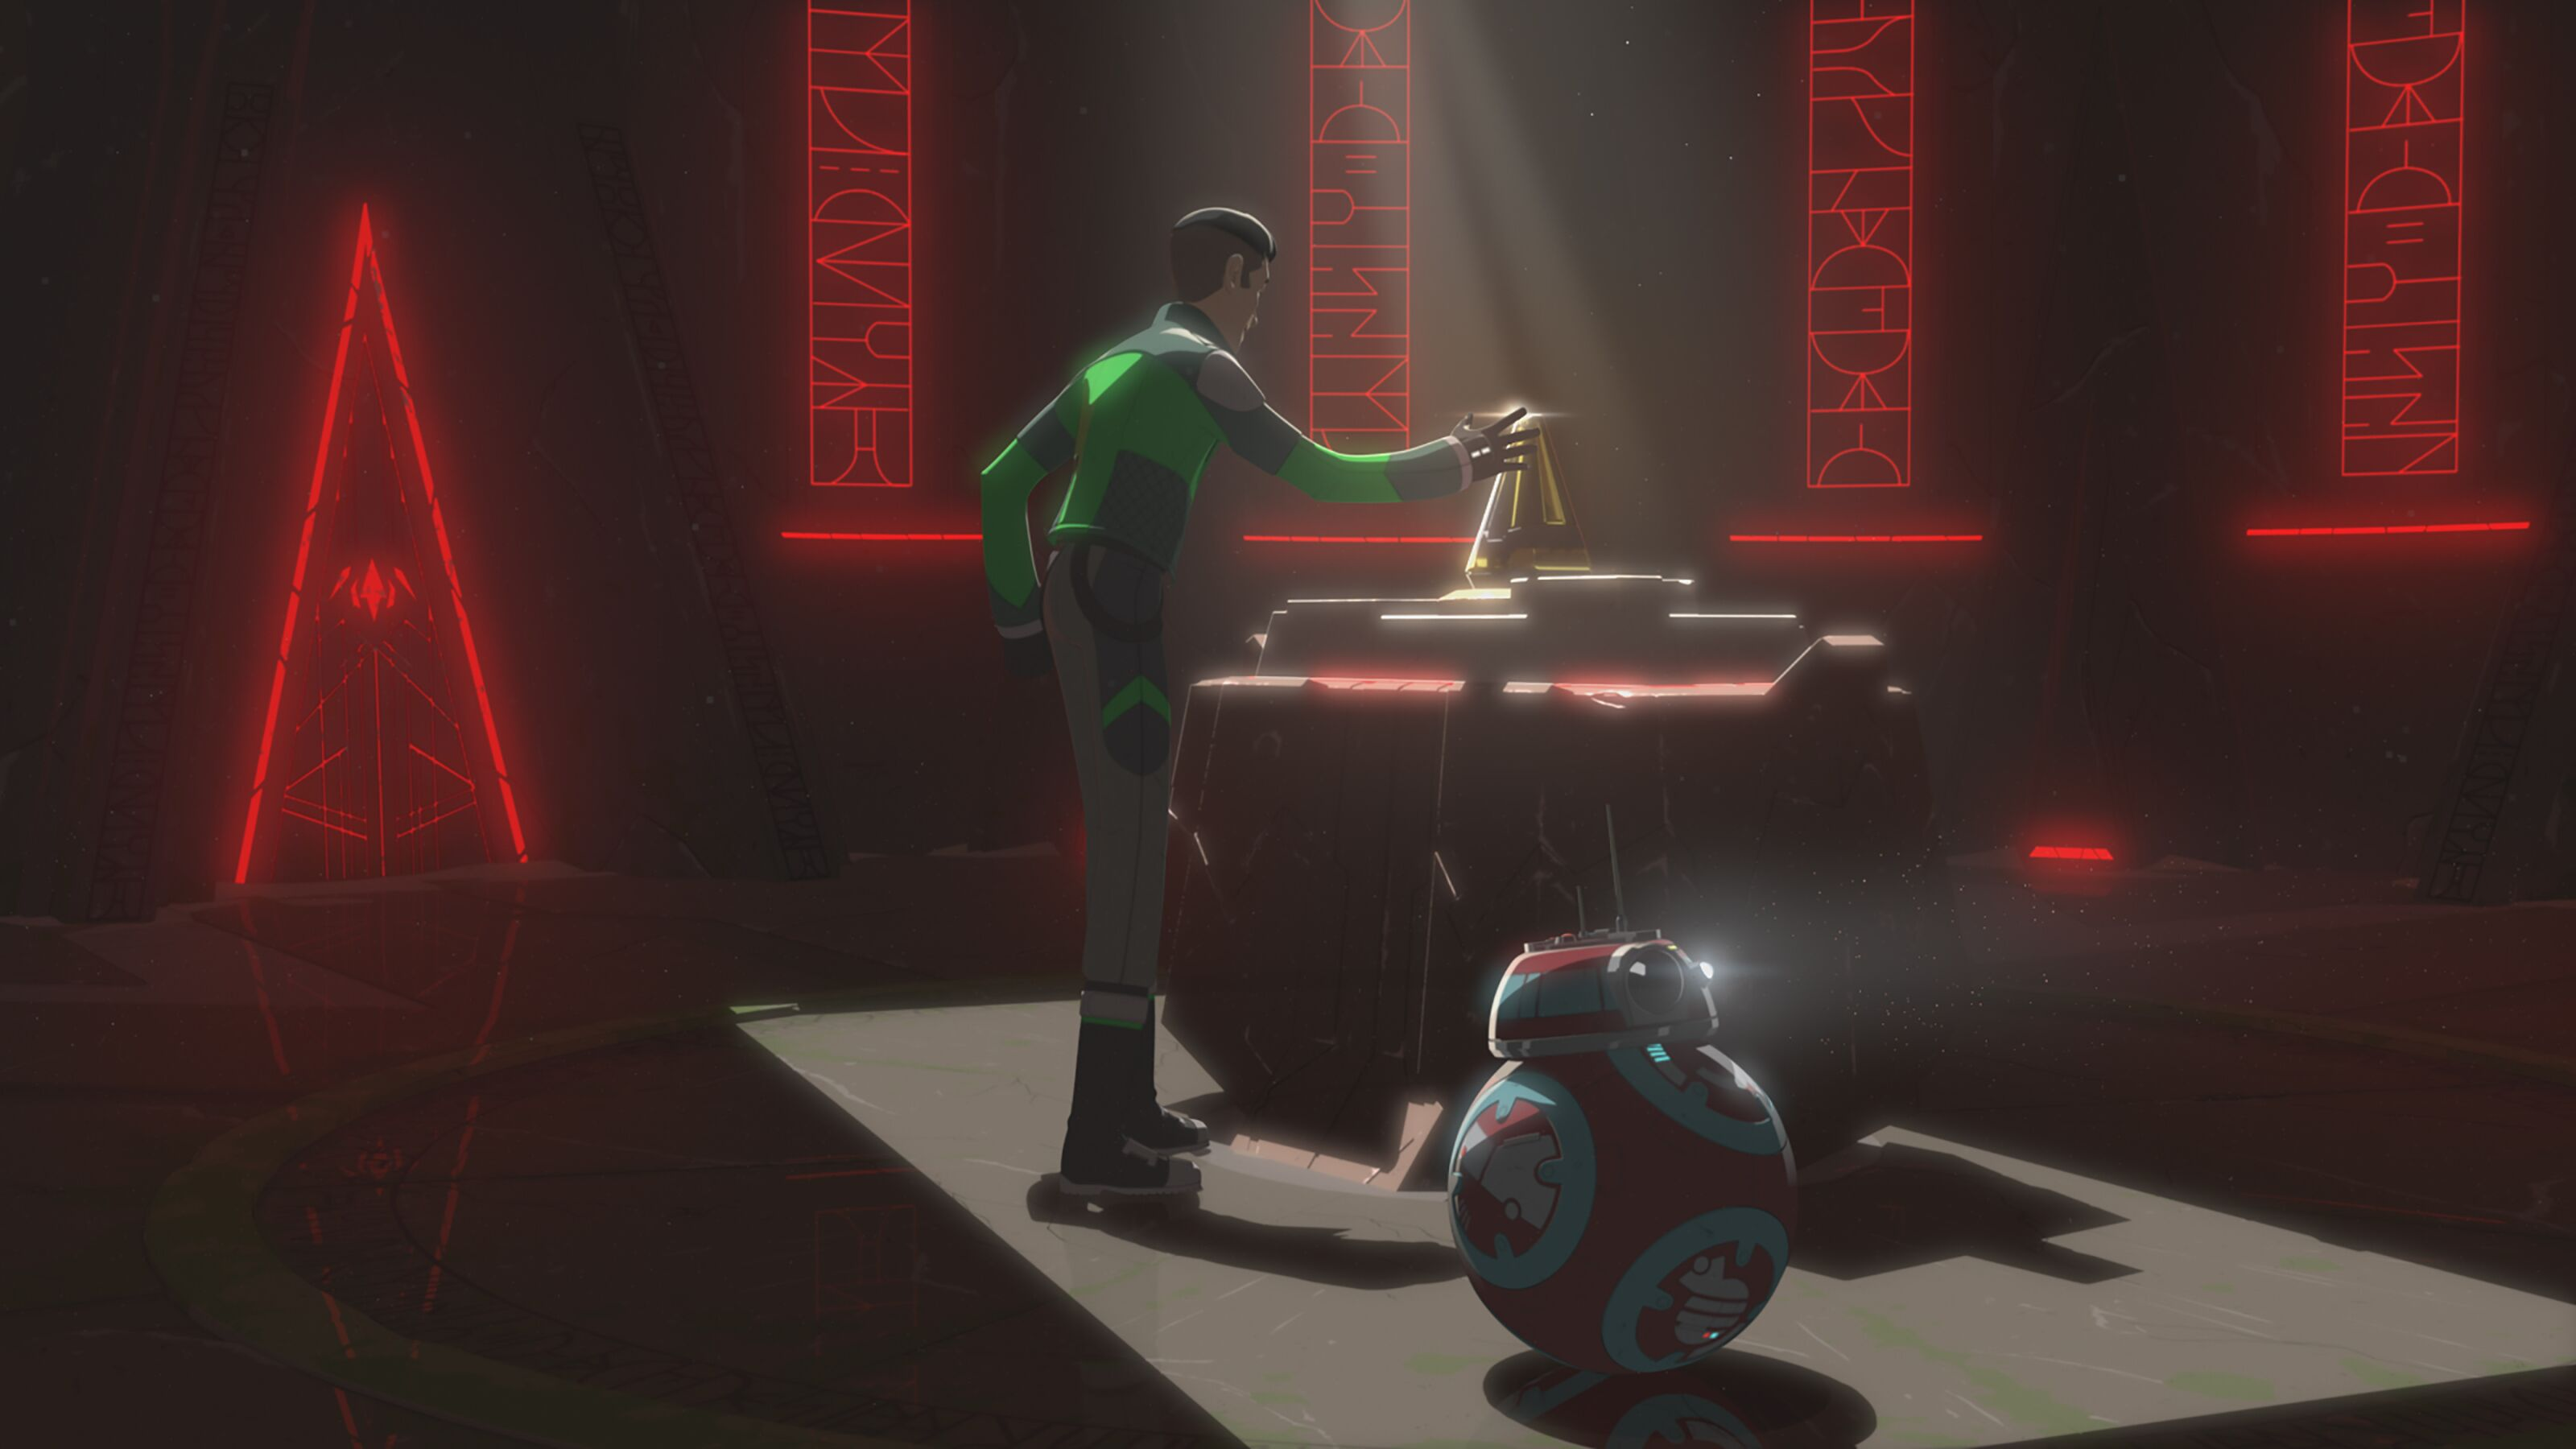 Star Wars Resistance adds some more intrigue to Episode IX about Kylo Ren